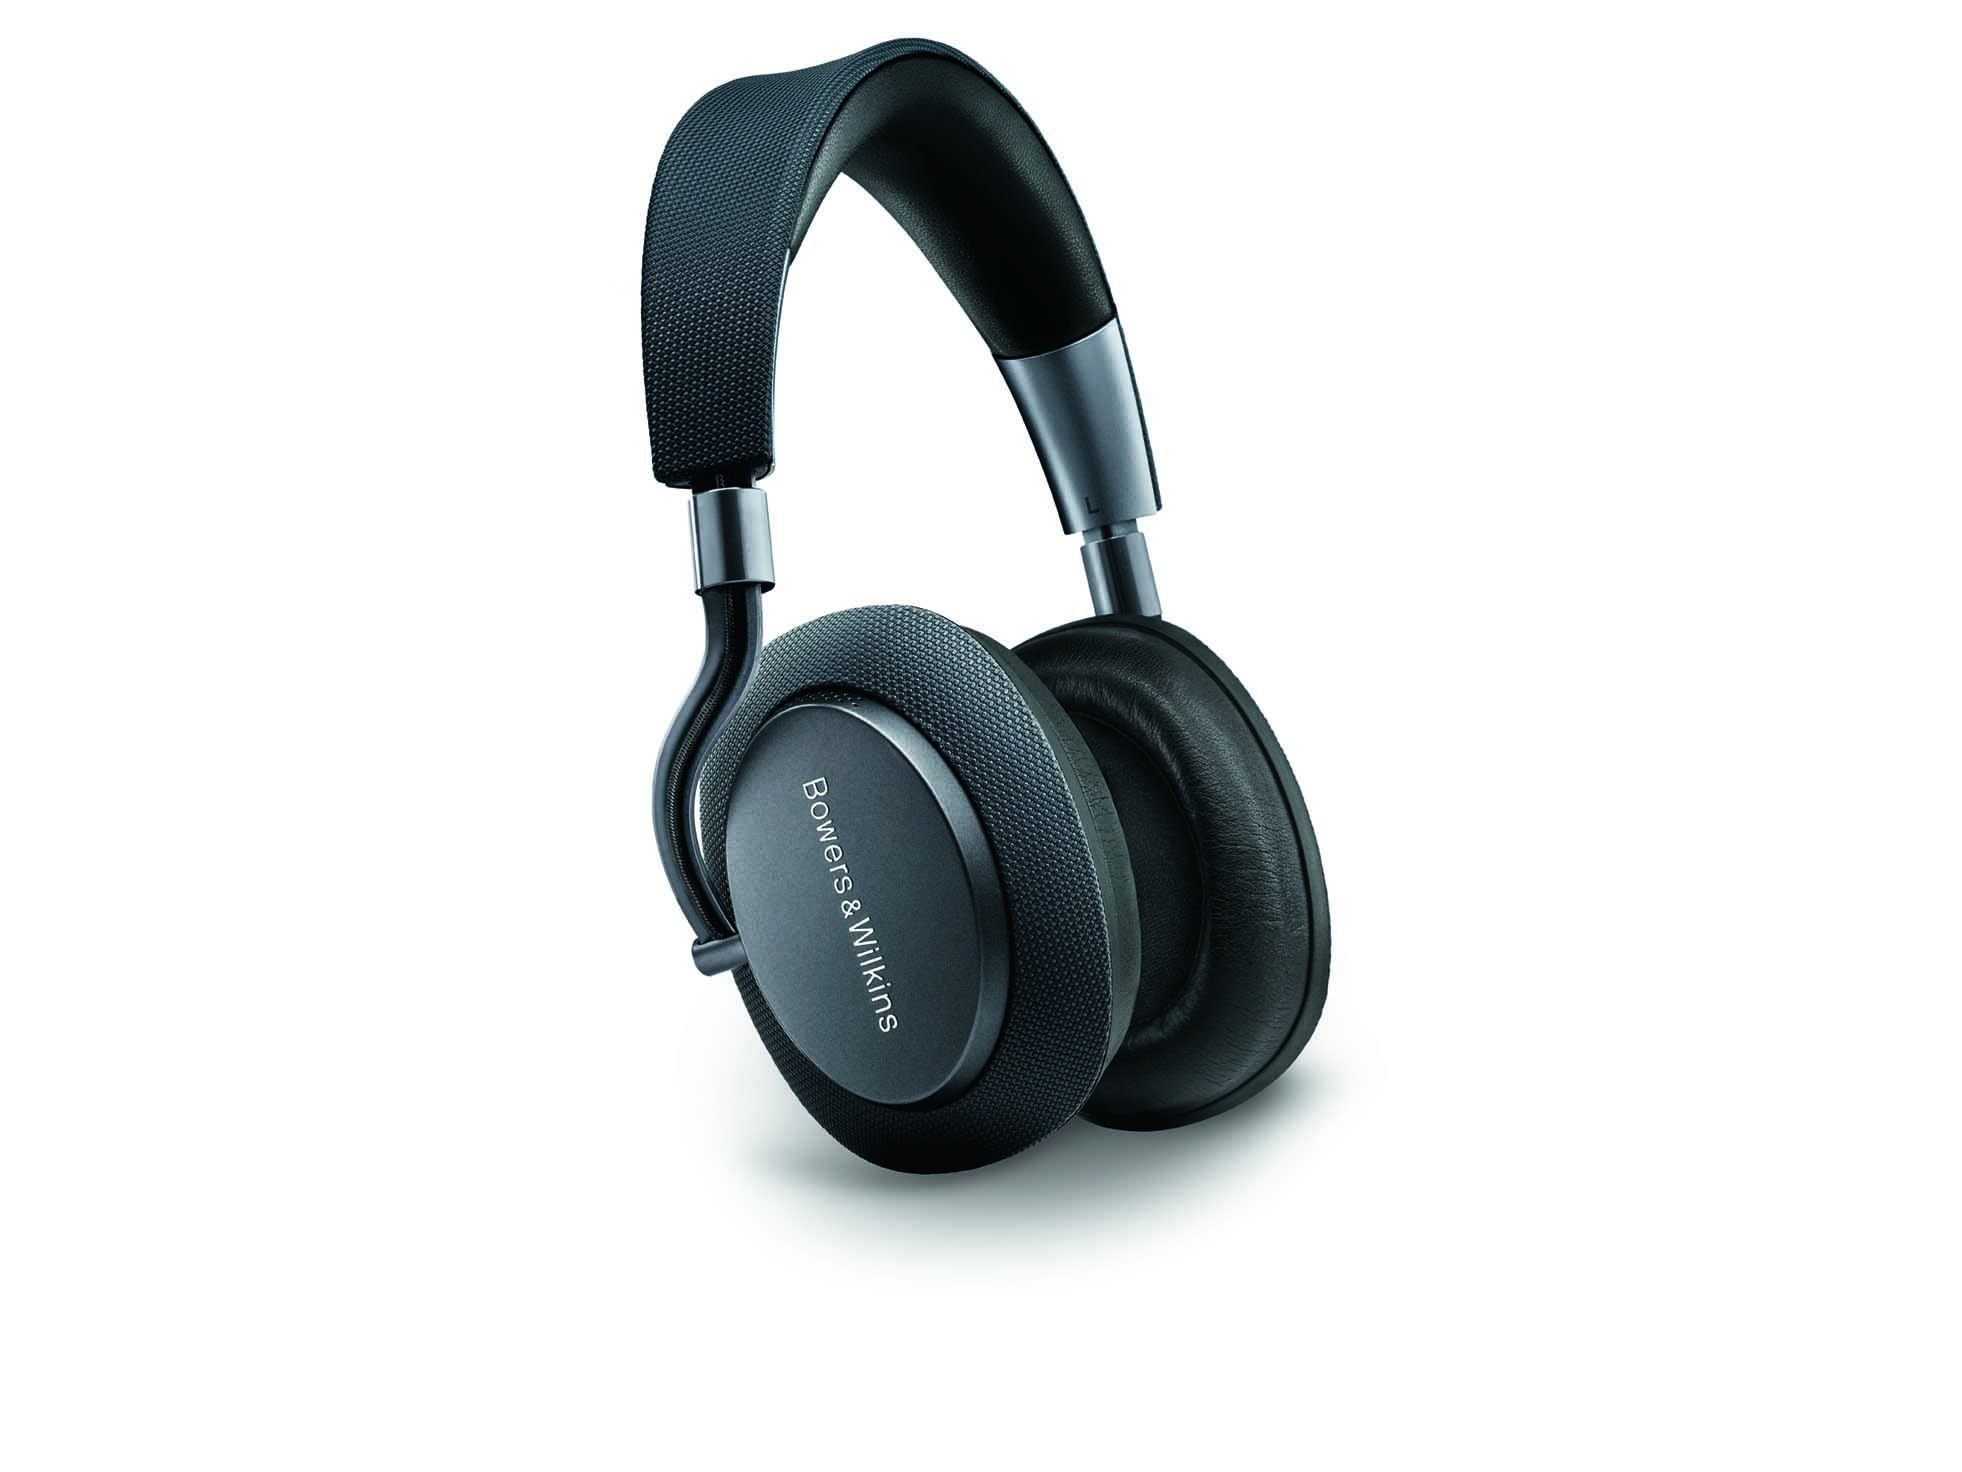 Bowers & Wilkins PX Wireless Headphones, Noise Cancelling, Space Grey by Bowers & Wilkins